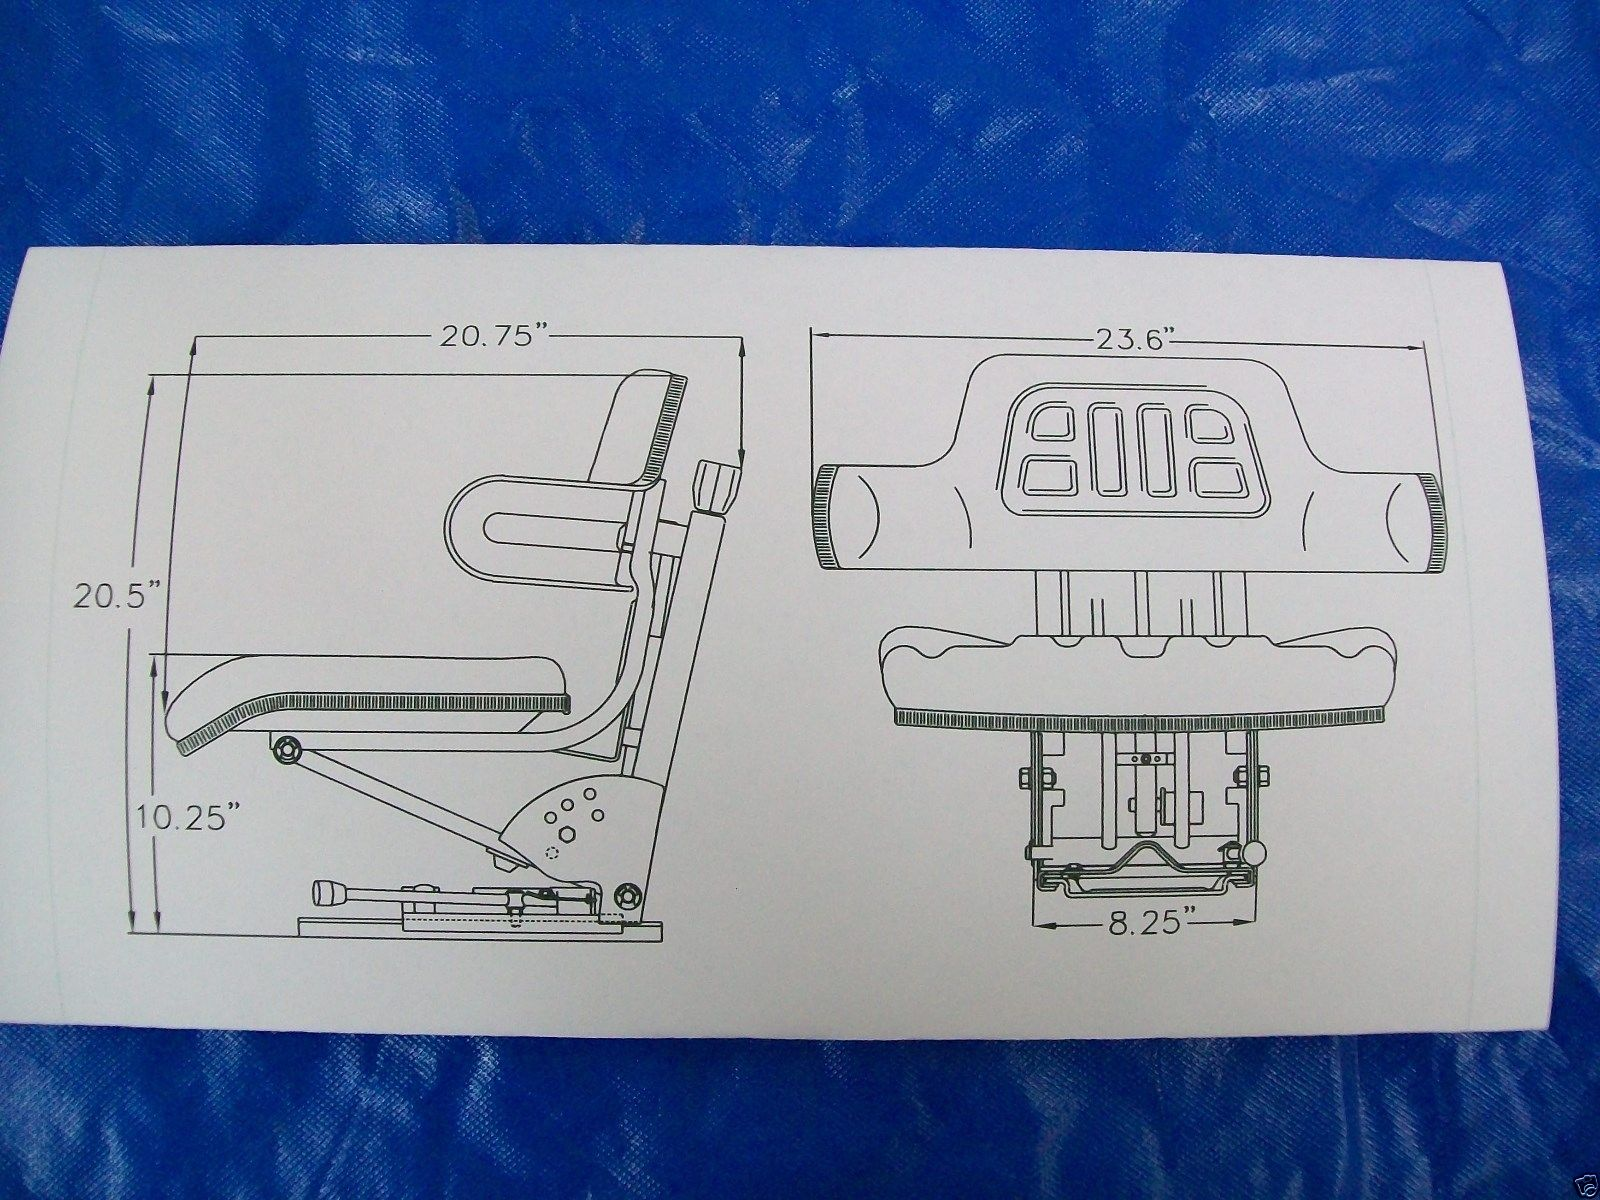 tractor seat yellow waffle farm tractors universal fit spring suspension ao seat warehouse John Deere Sabre Wiring Diagram John Deere Radio Wiring Diagram